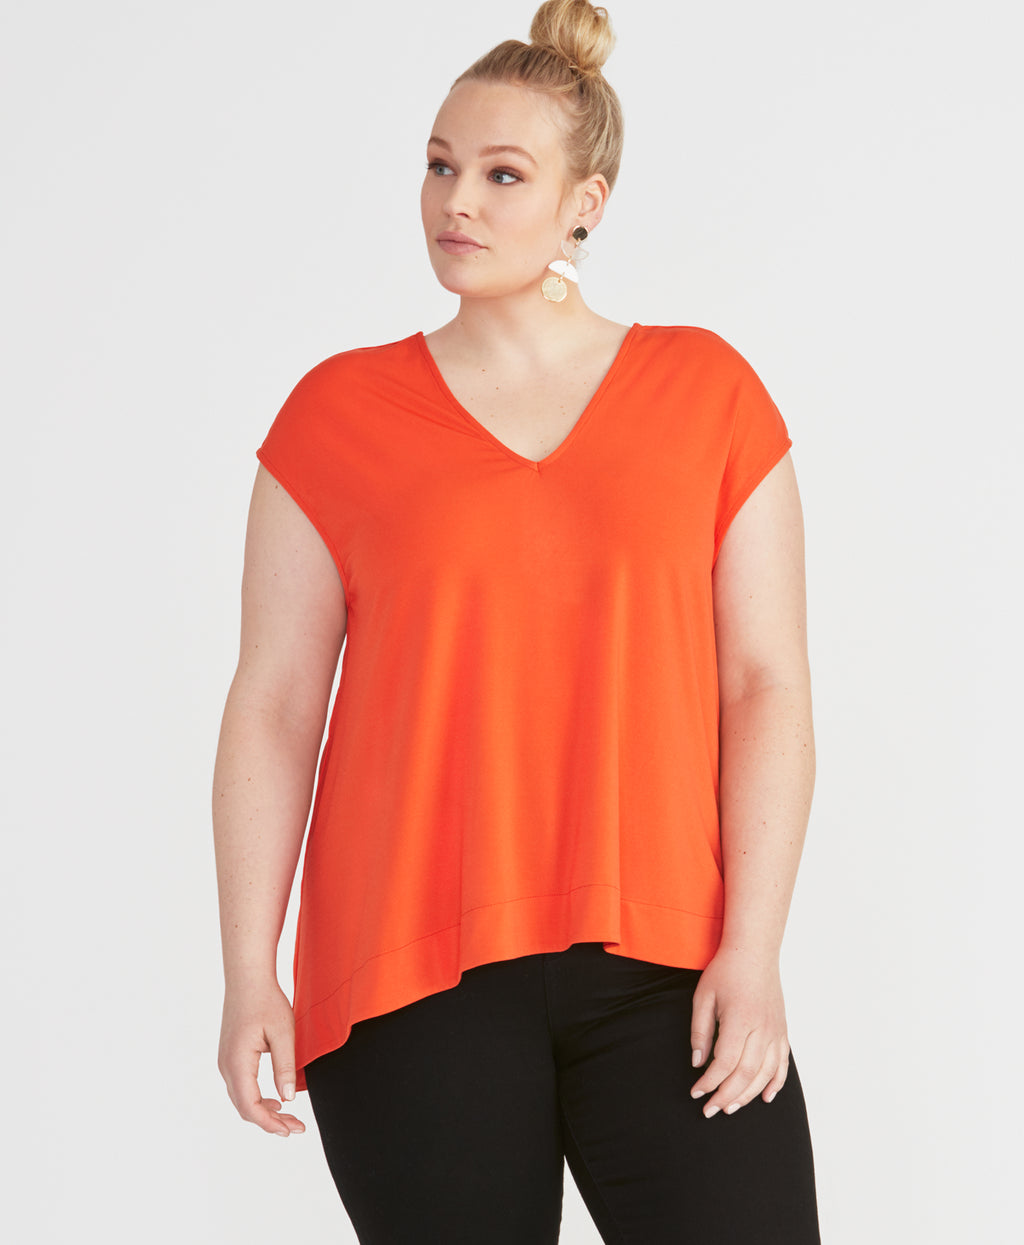 Bina Top | Radiant Red